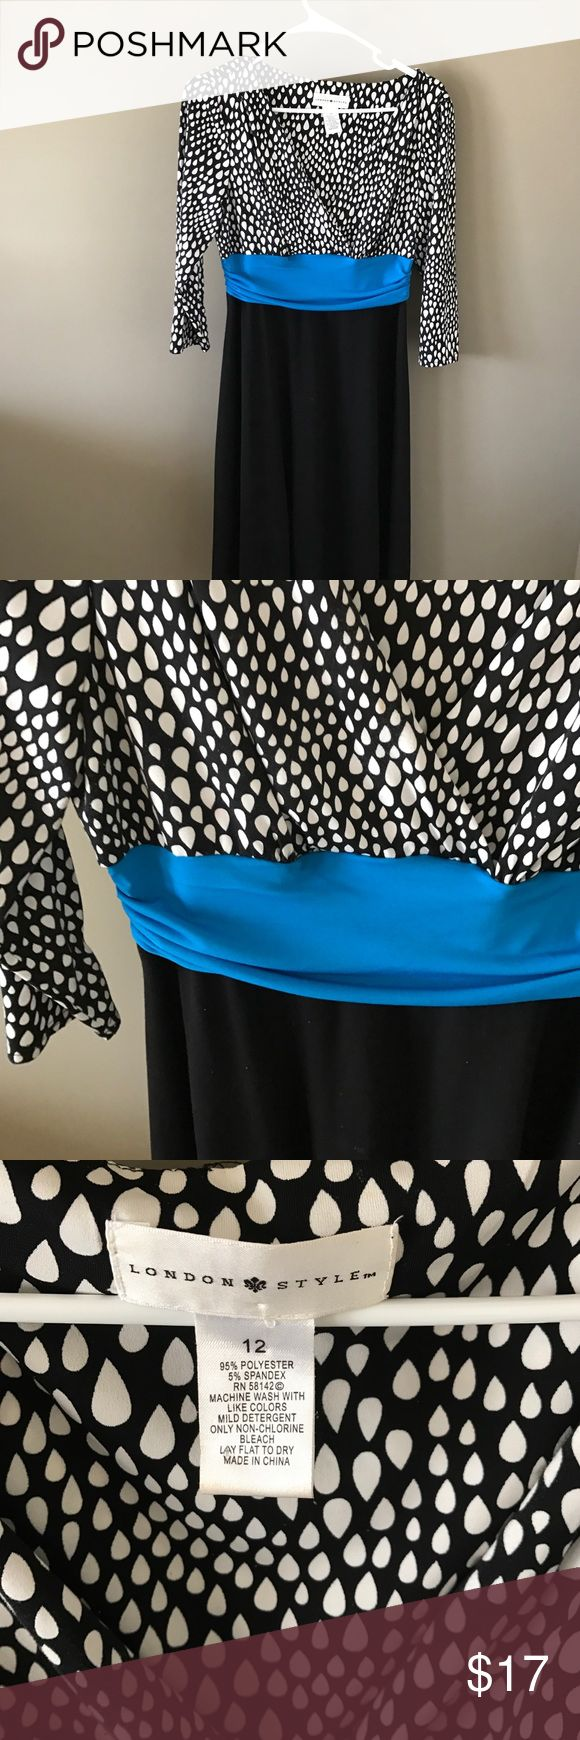 Blue band dress Great dress!  White & black with a electric blue band! london style Dresses Midi